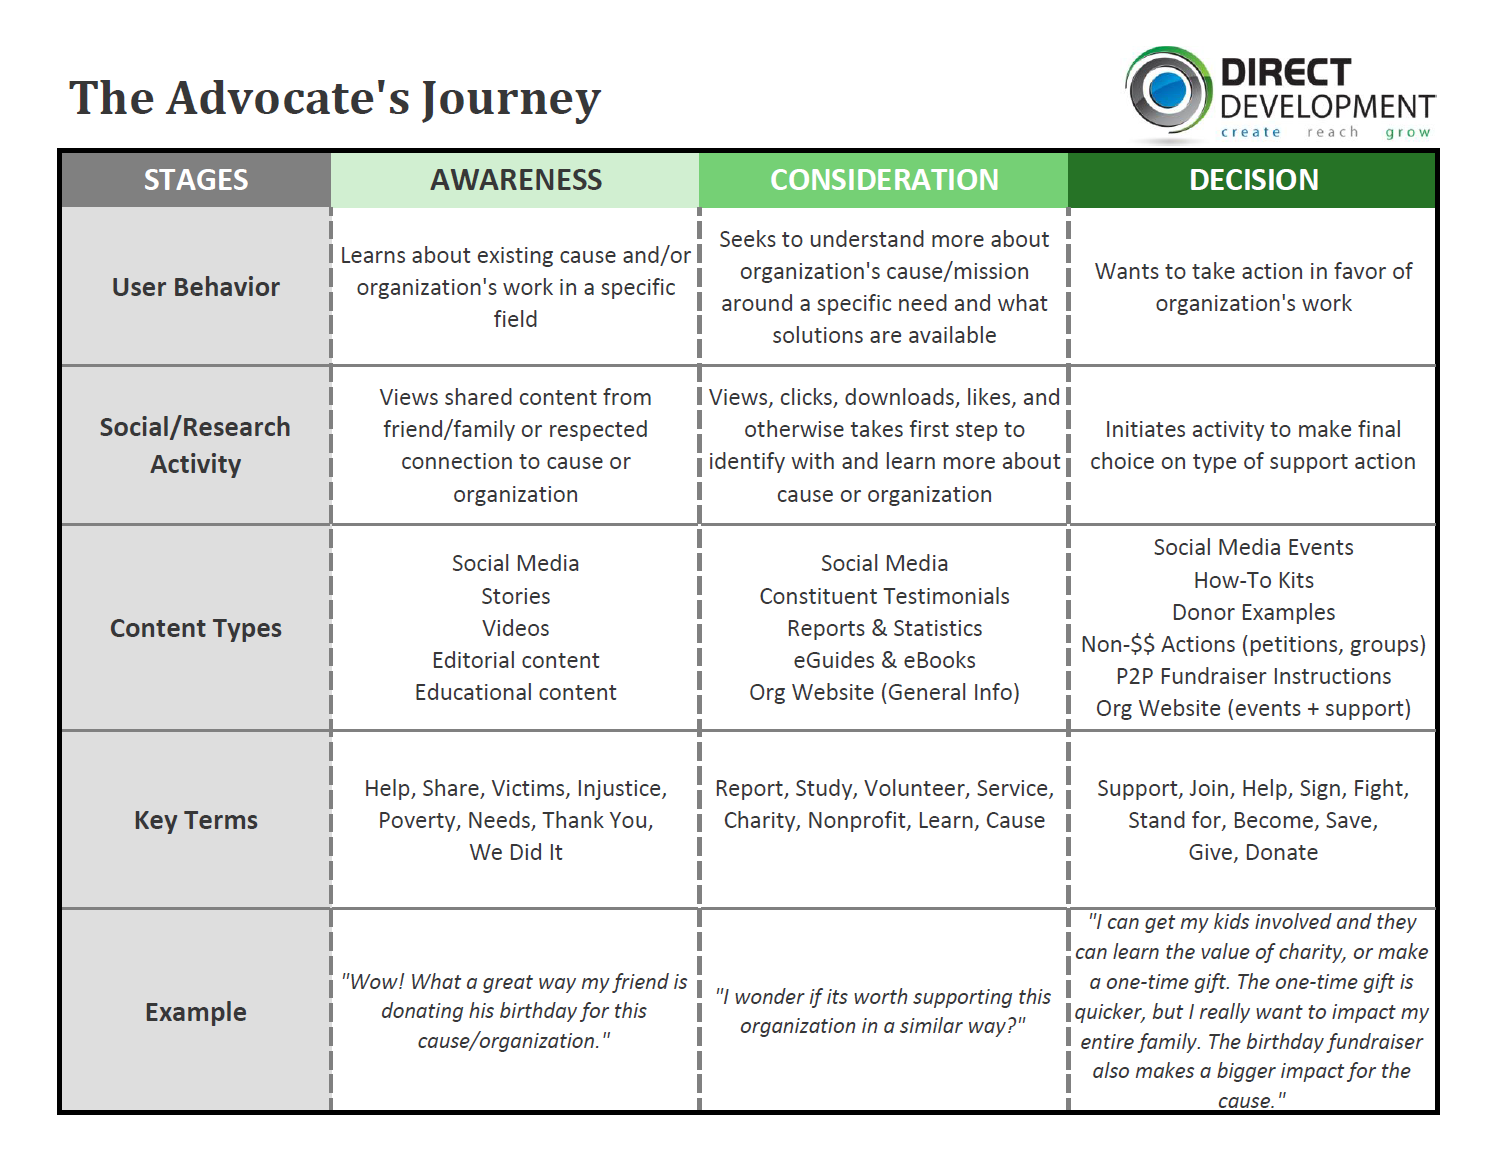 The Advocate Journey Worksheet (sample)